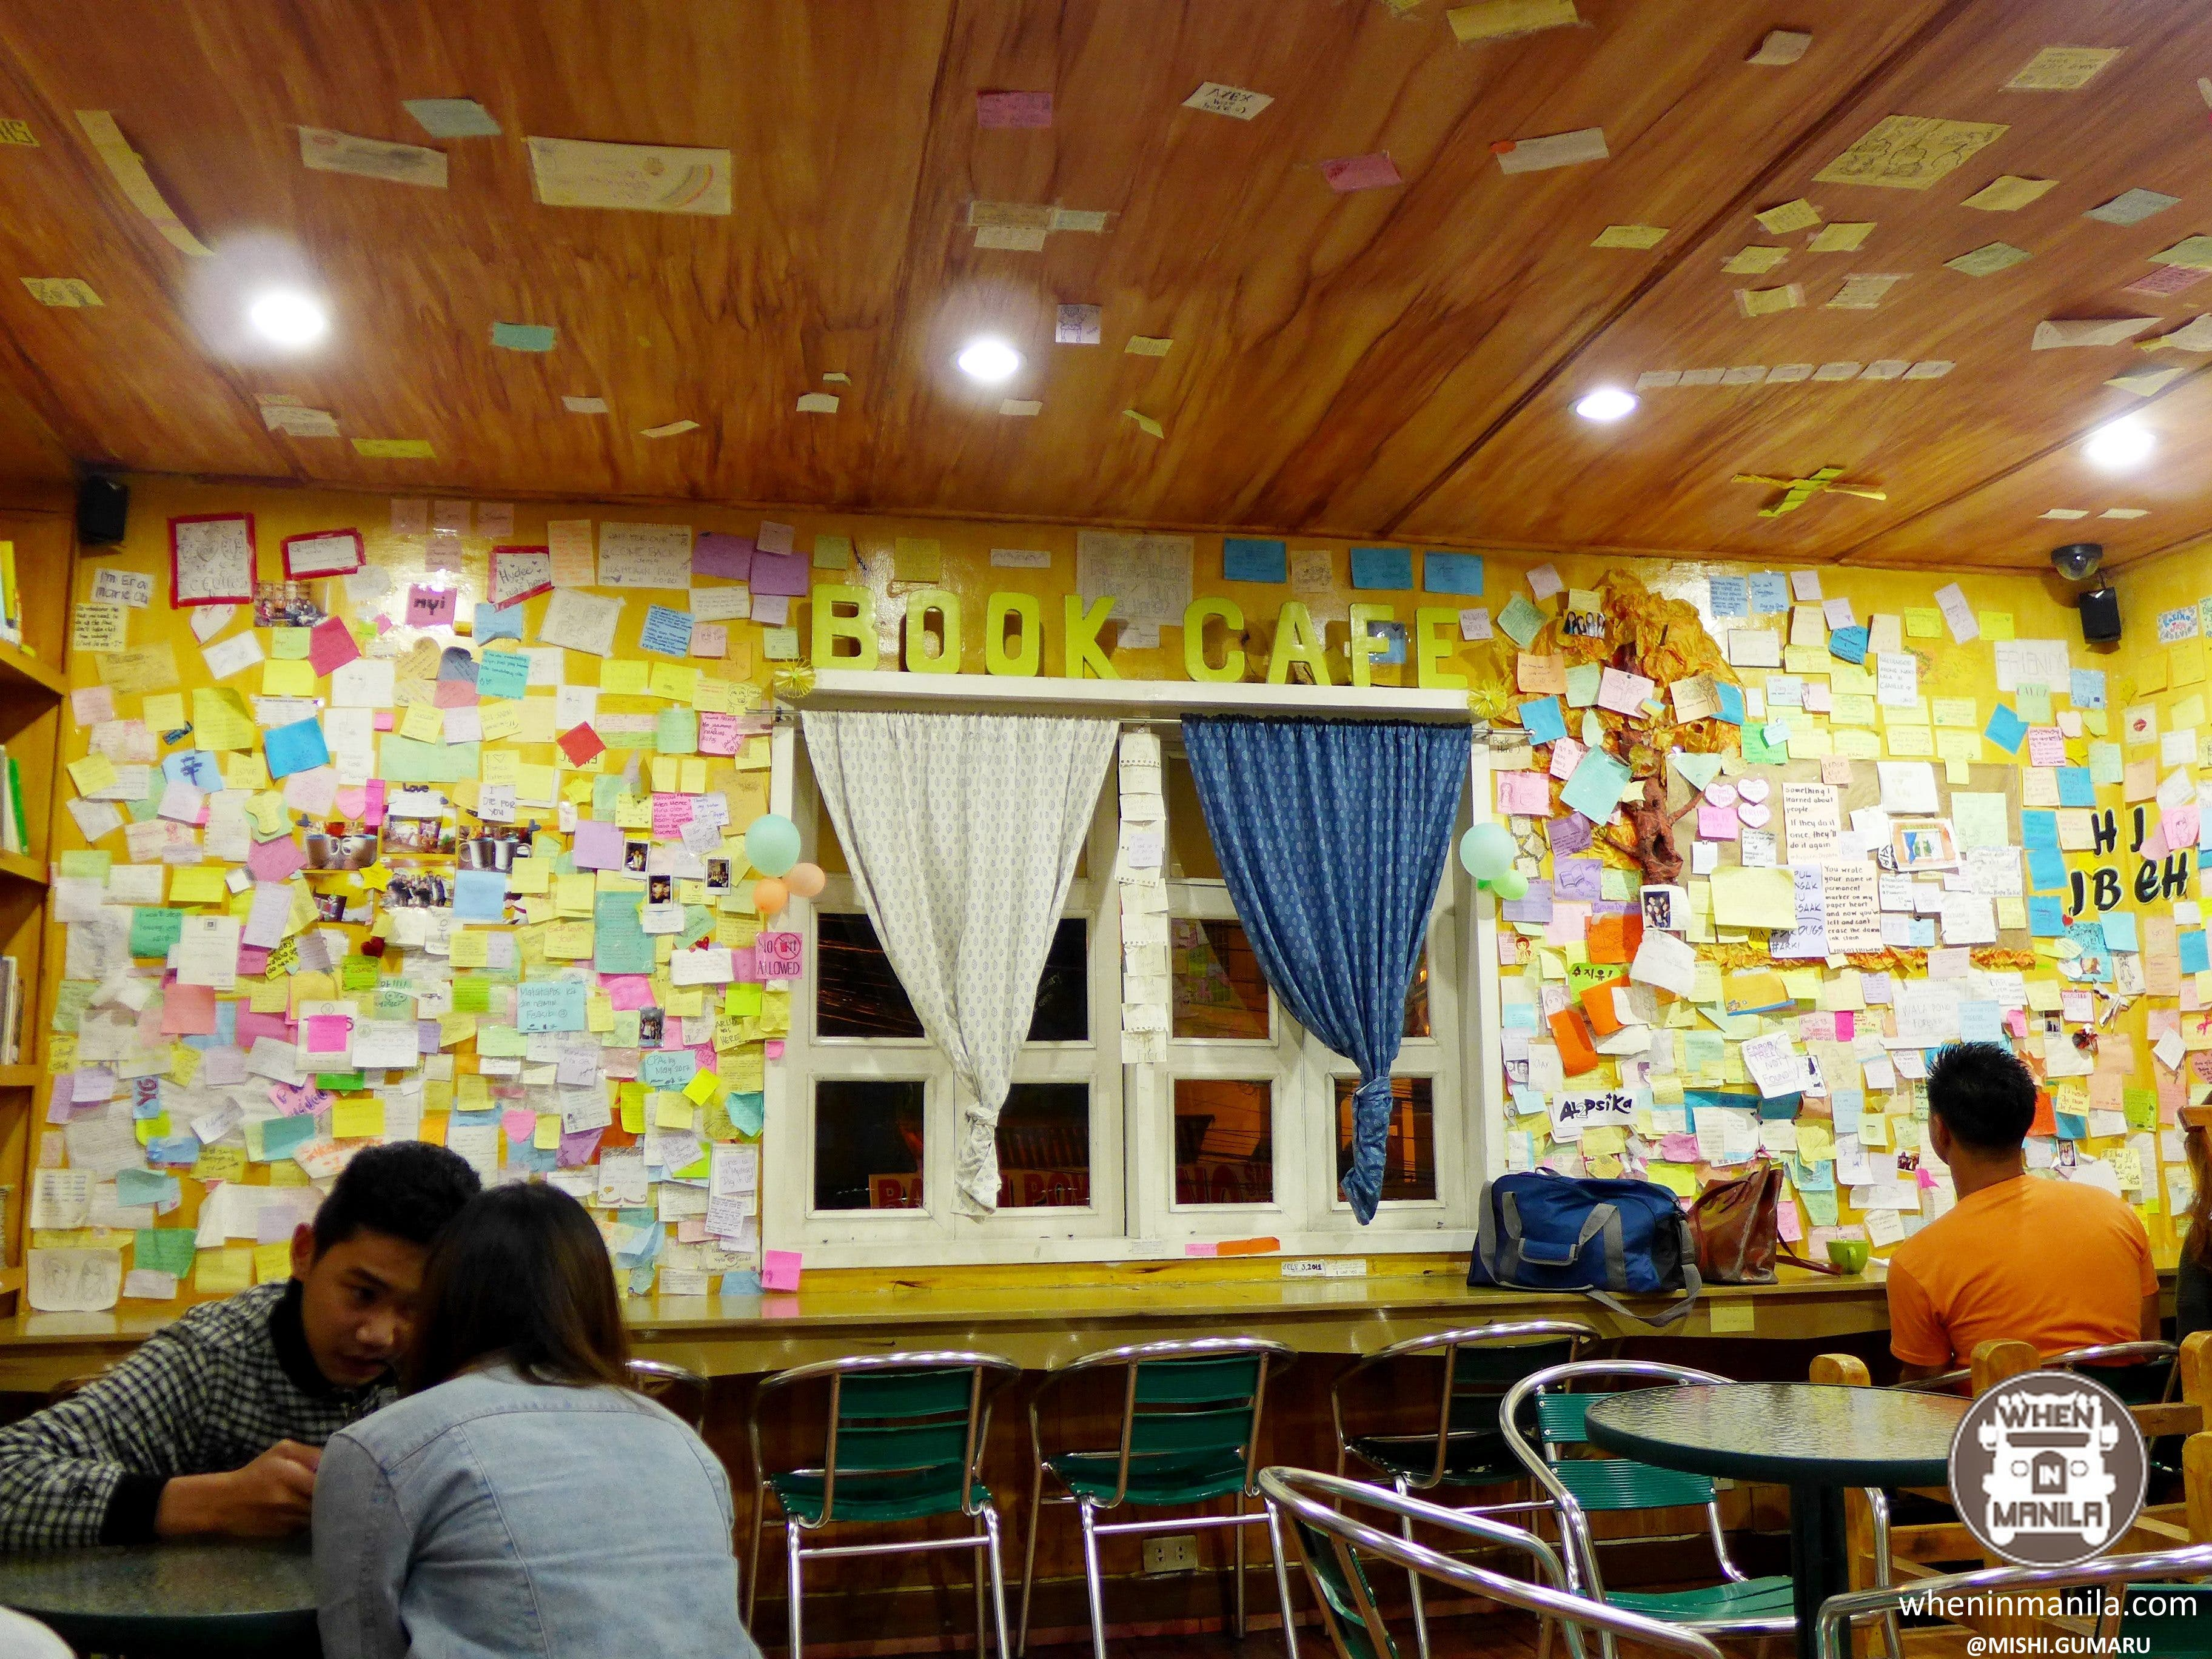 5 Cool And Quirky Cafes You Must Check Out When In Baguio